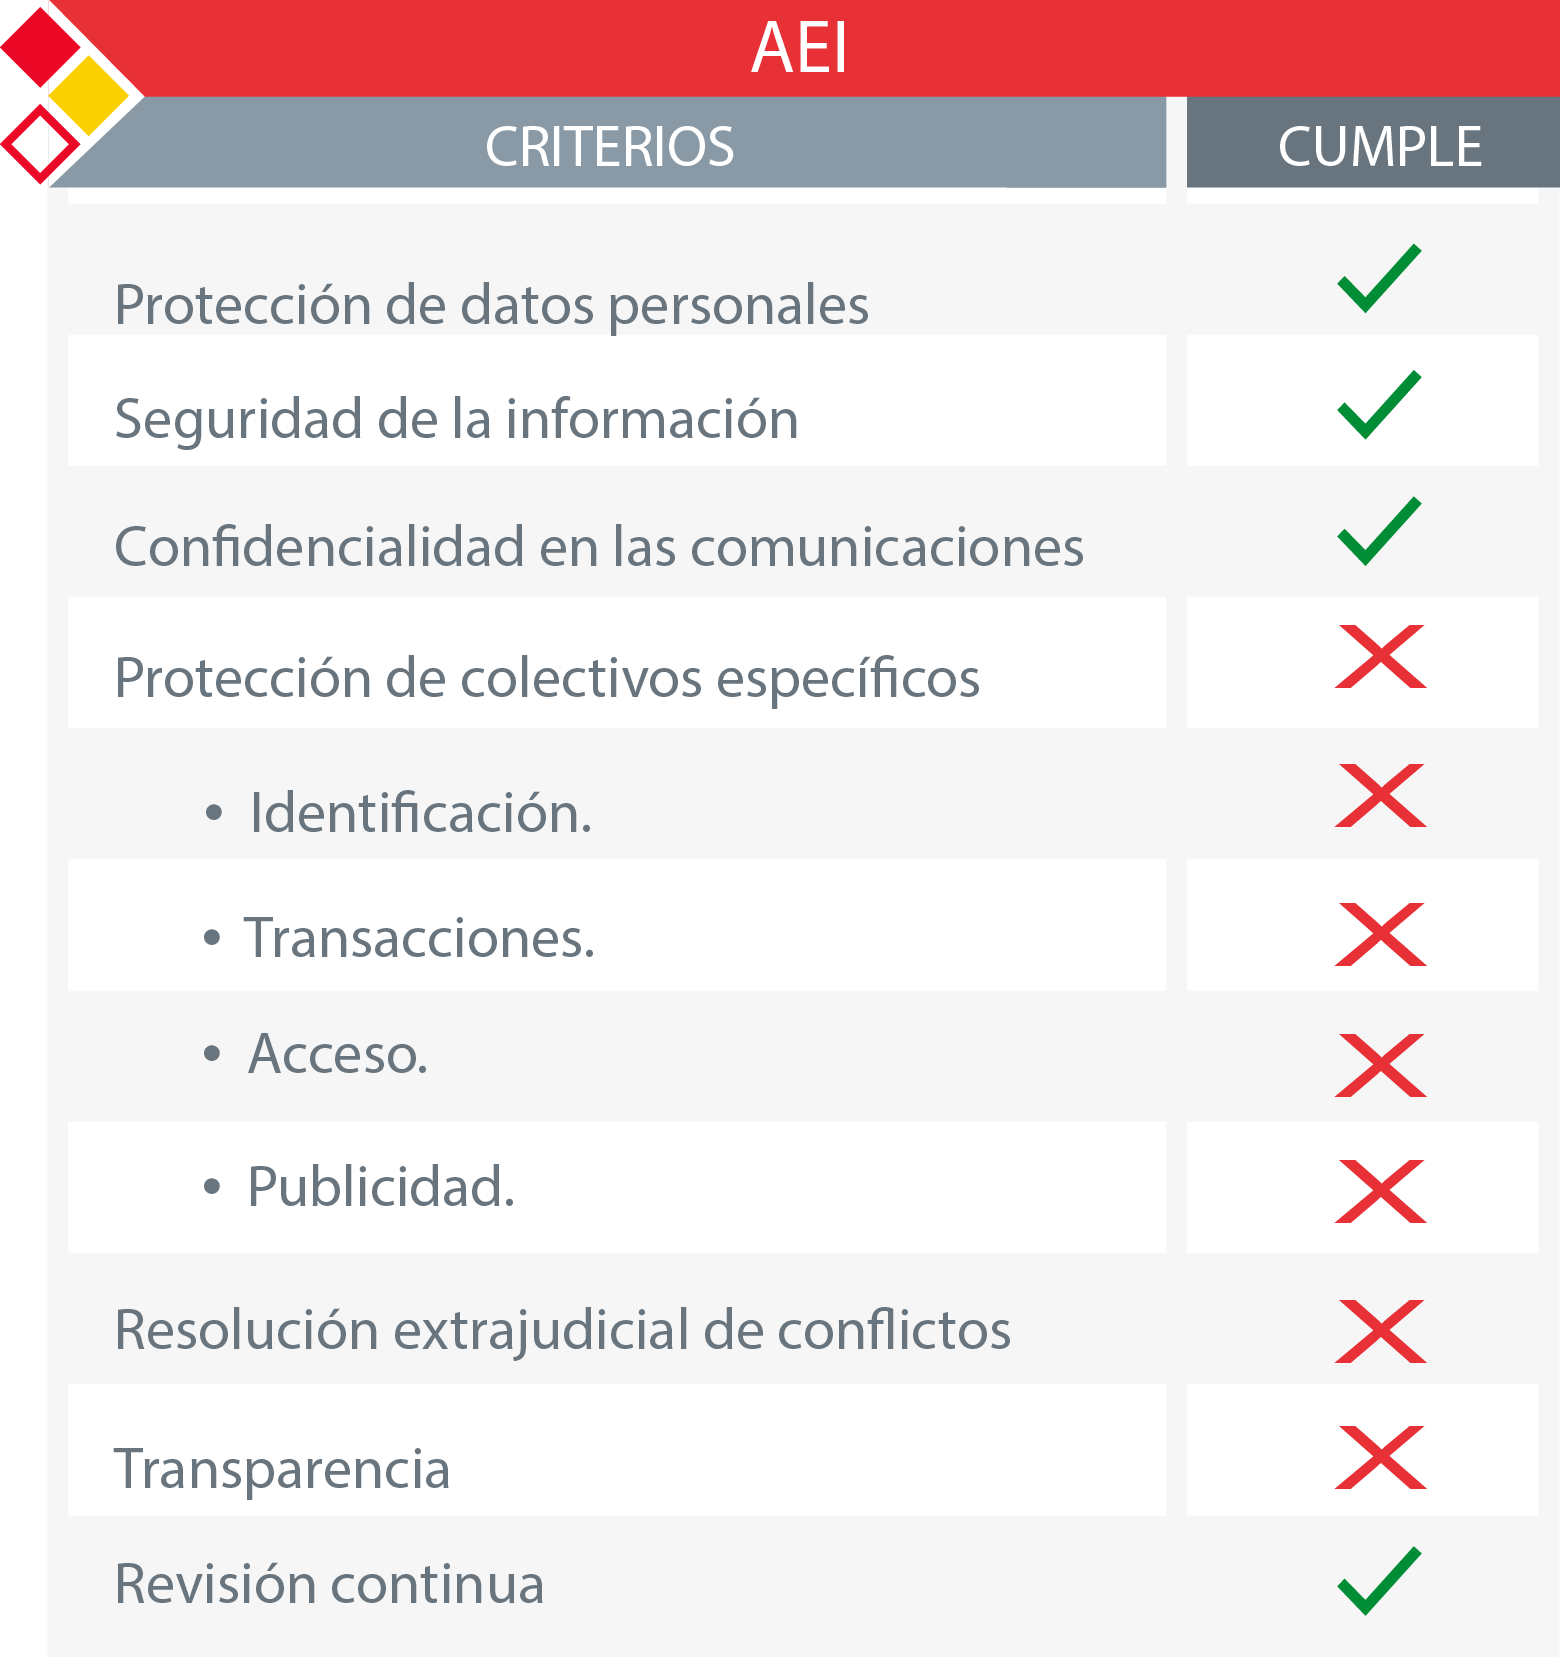 Tabla de criterios INCIBE para el sello AEI Sello de Ciberseguridad